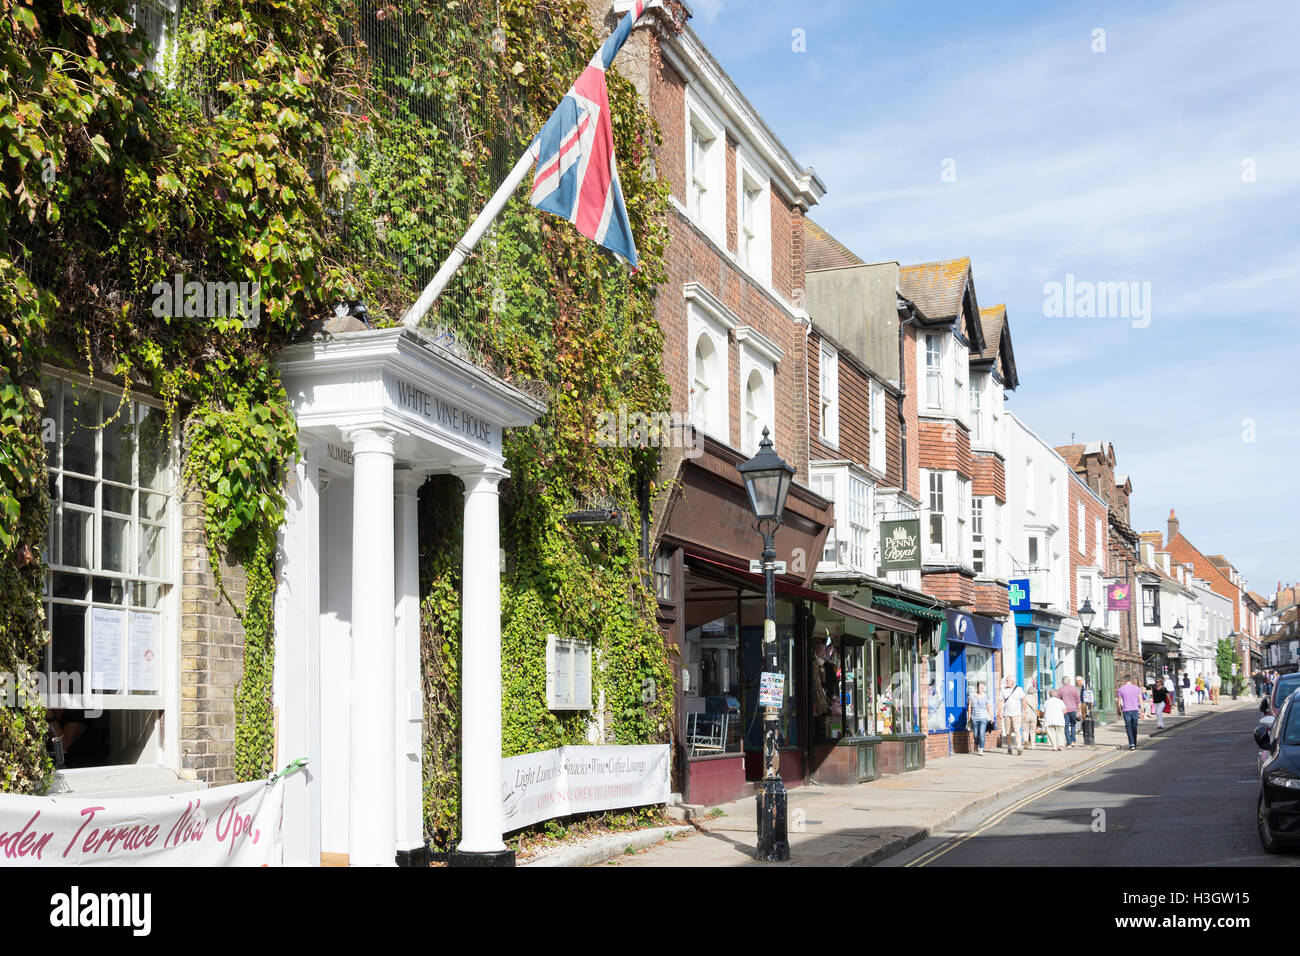 High Street, Rye, East Sussex, Angleterre, Royaume-Uni Photo Stock